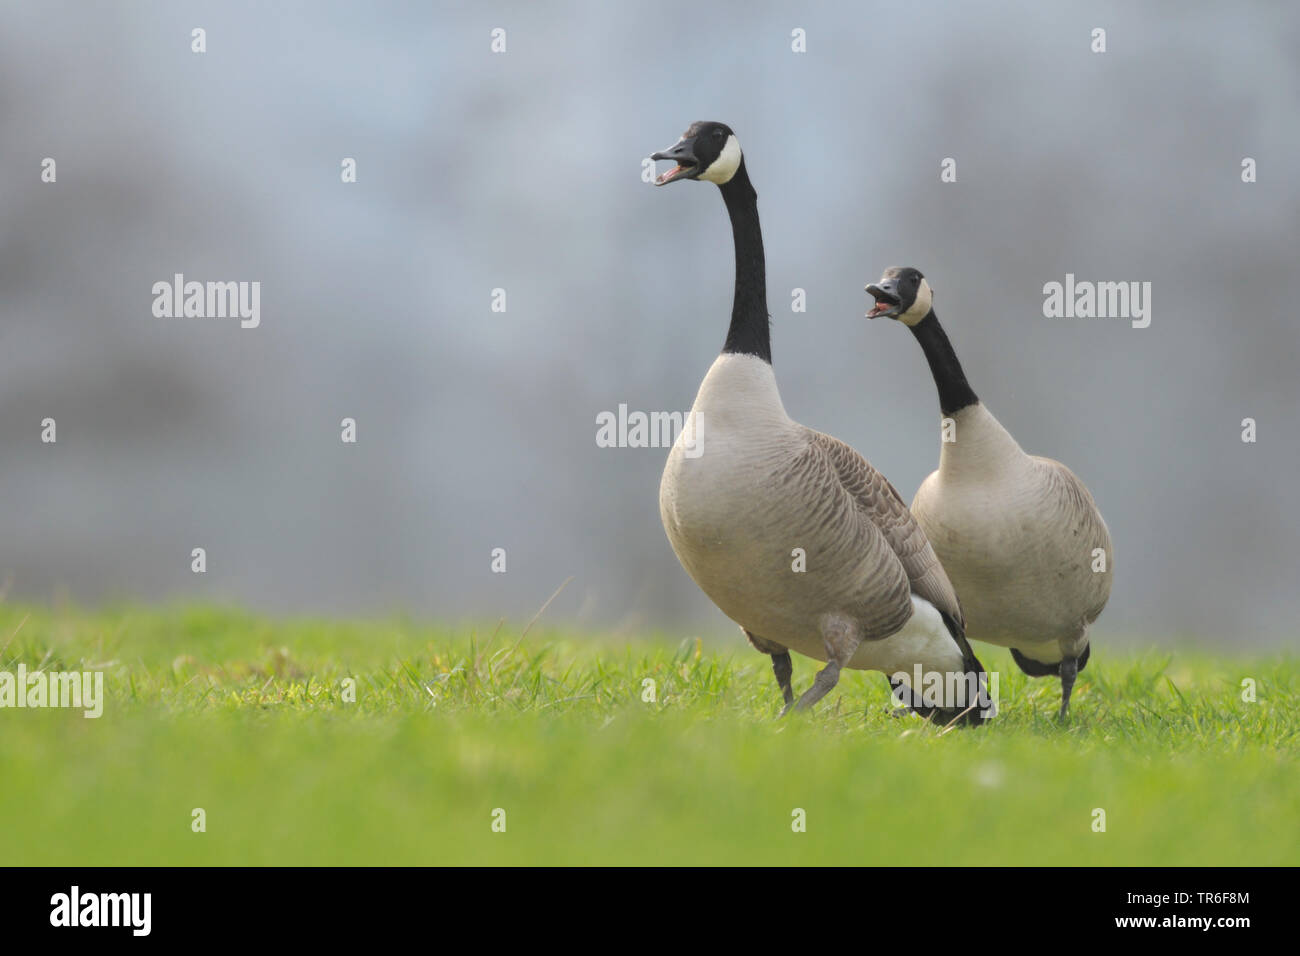 Canada goose (Branta canadensis), two conflicting Canada geese in a meadow, Germany - Stock Image